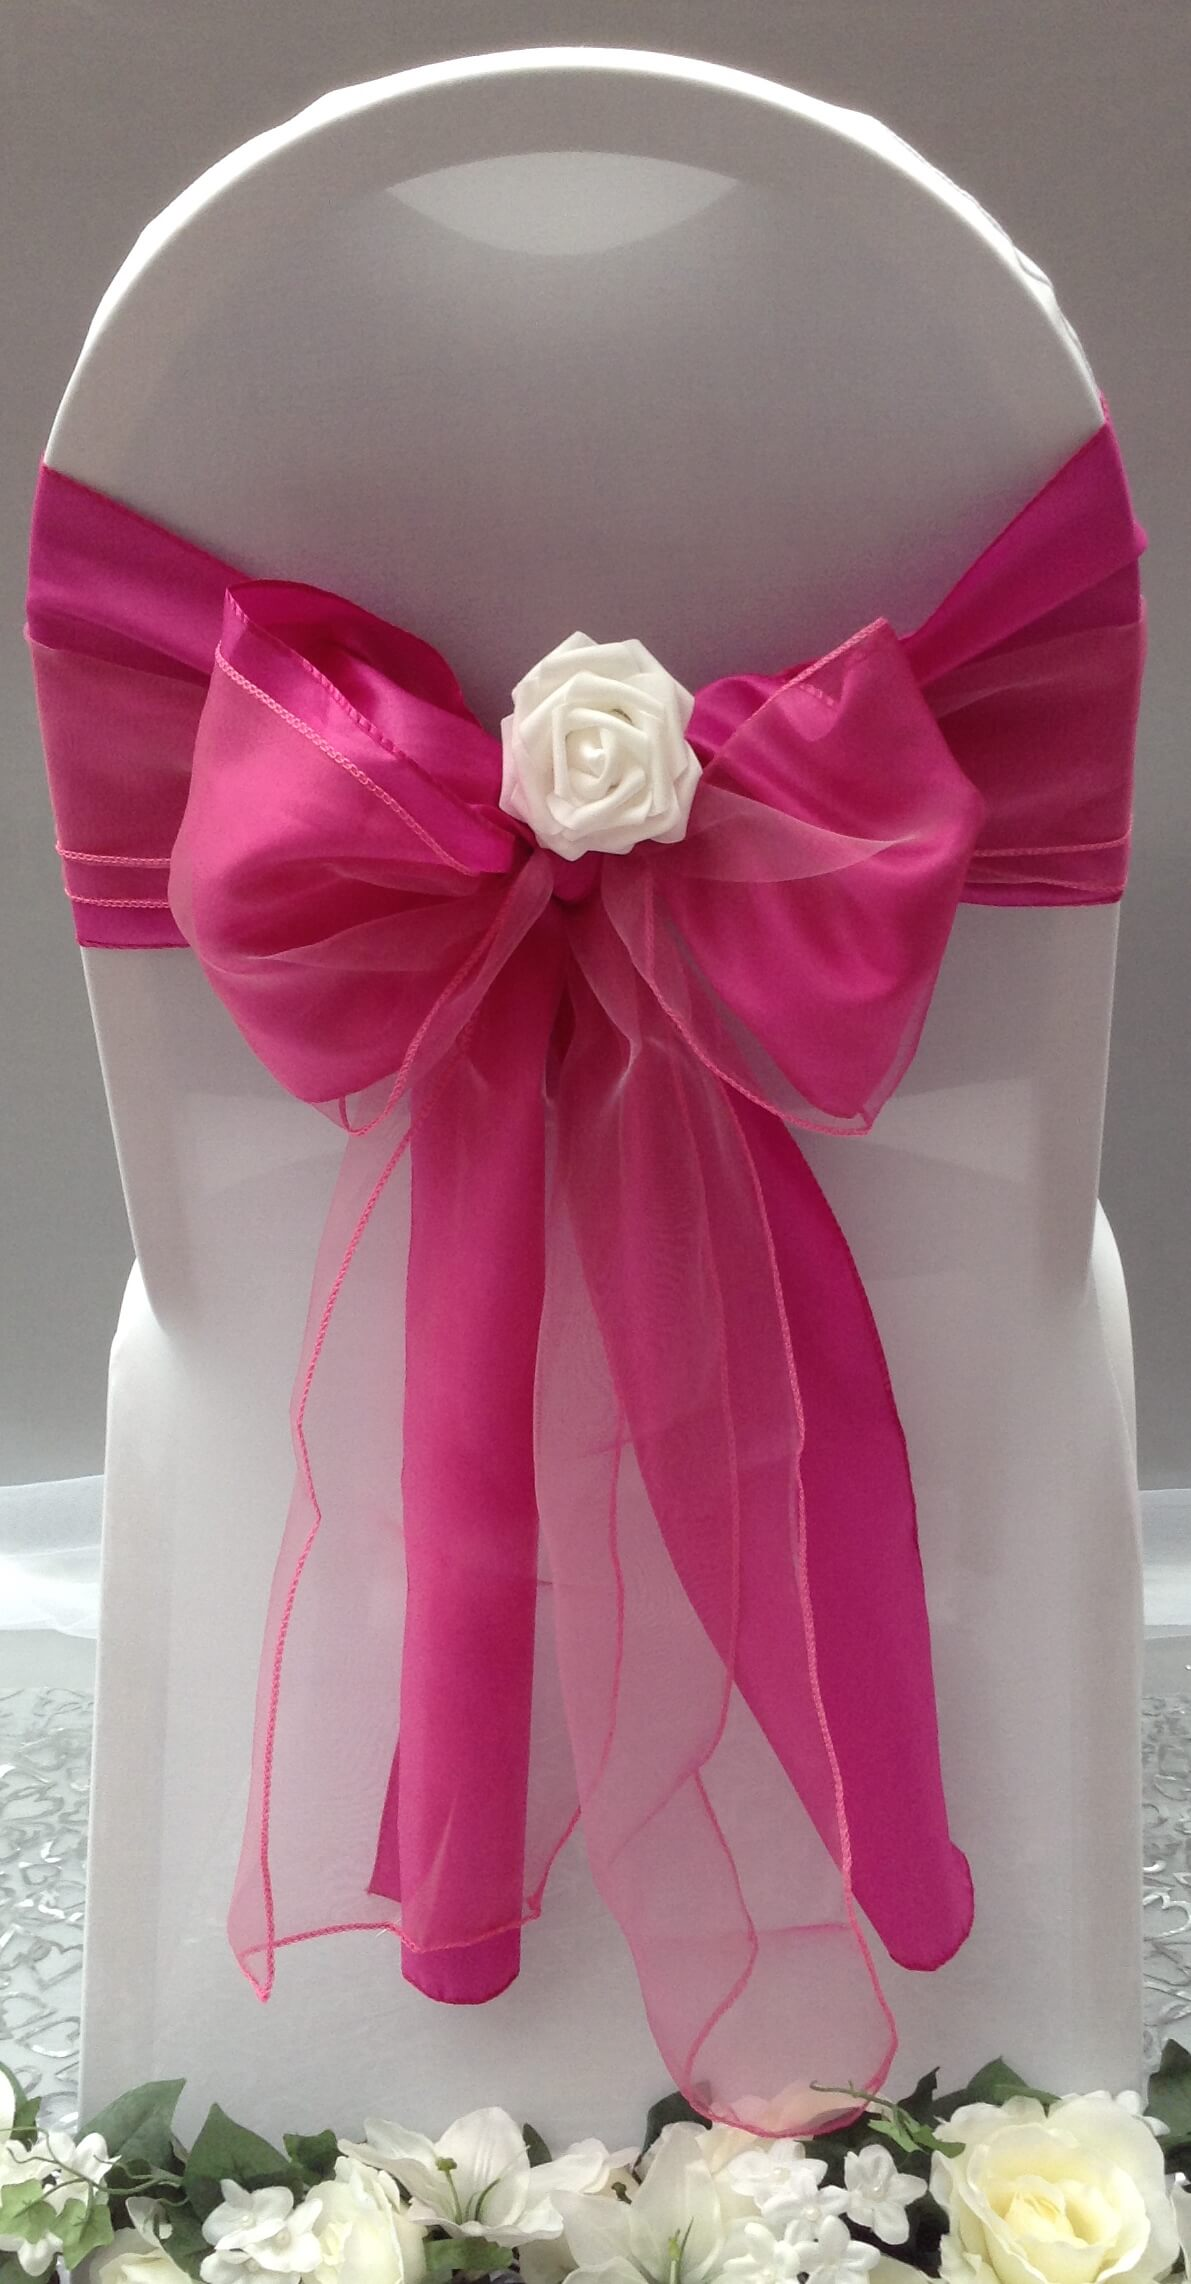 Double pink sash with white flower